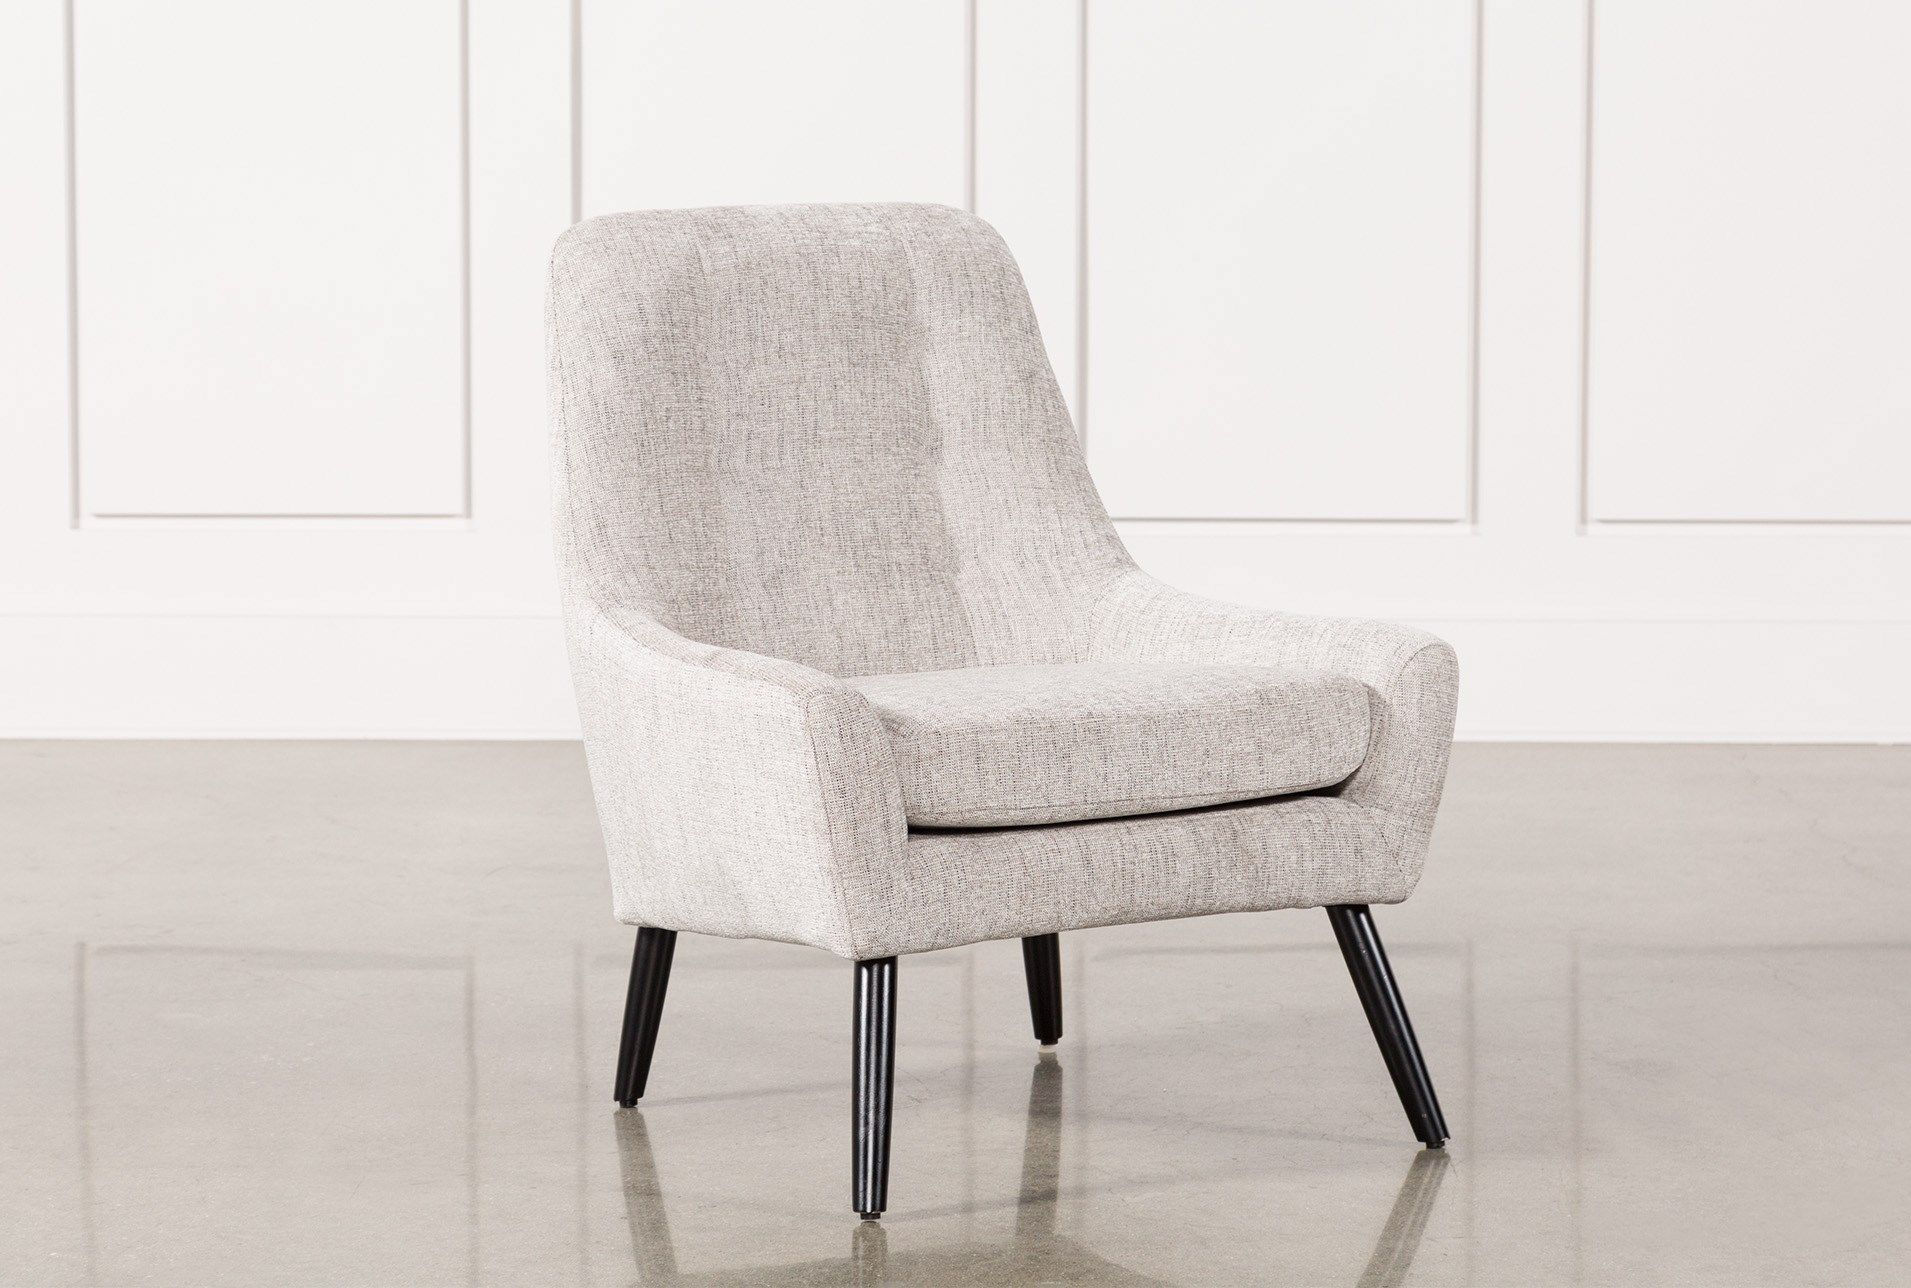 Shop For Bianca Marble Accent Chair At Livingspaces Com Enjoy